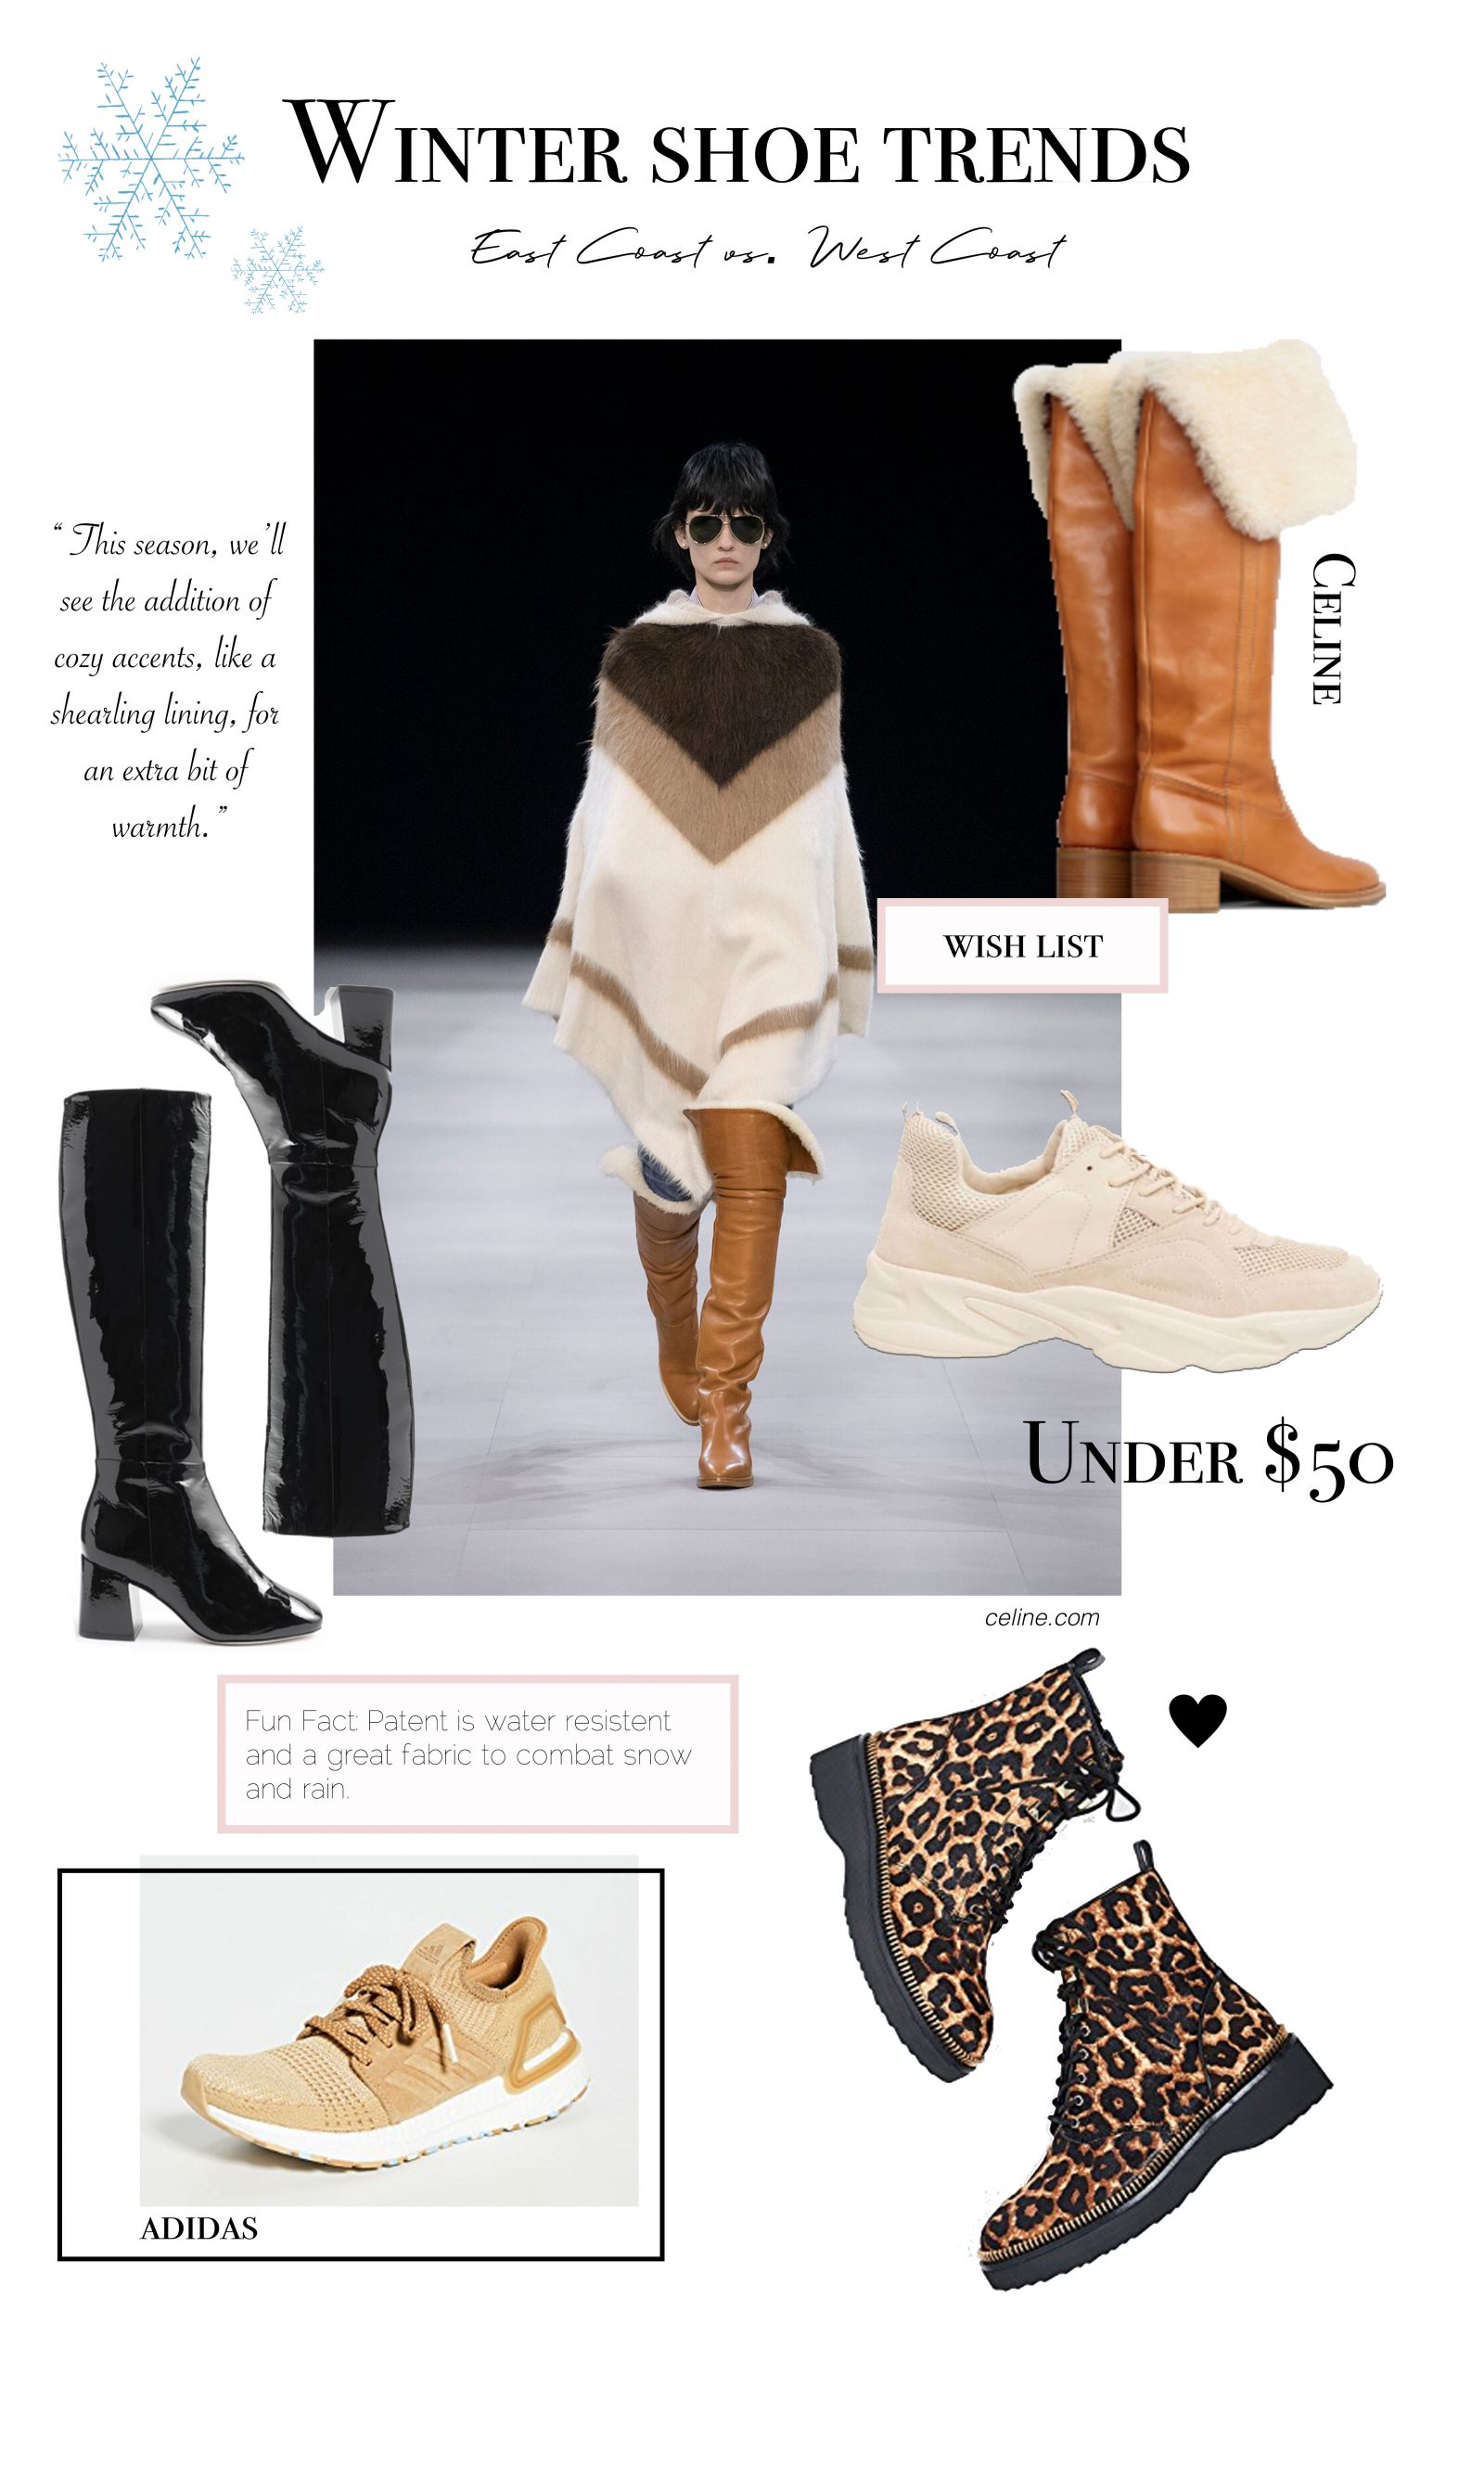 winter shoe trends collage